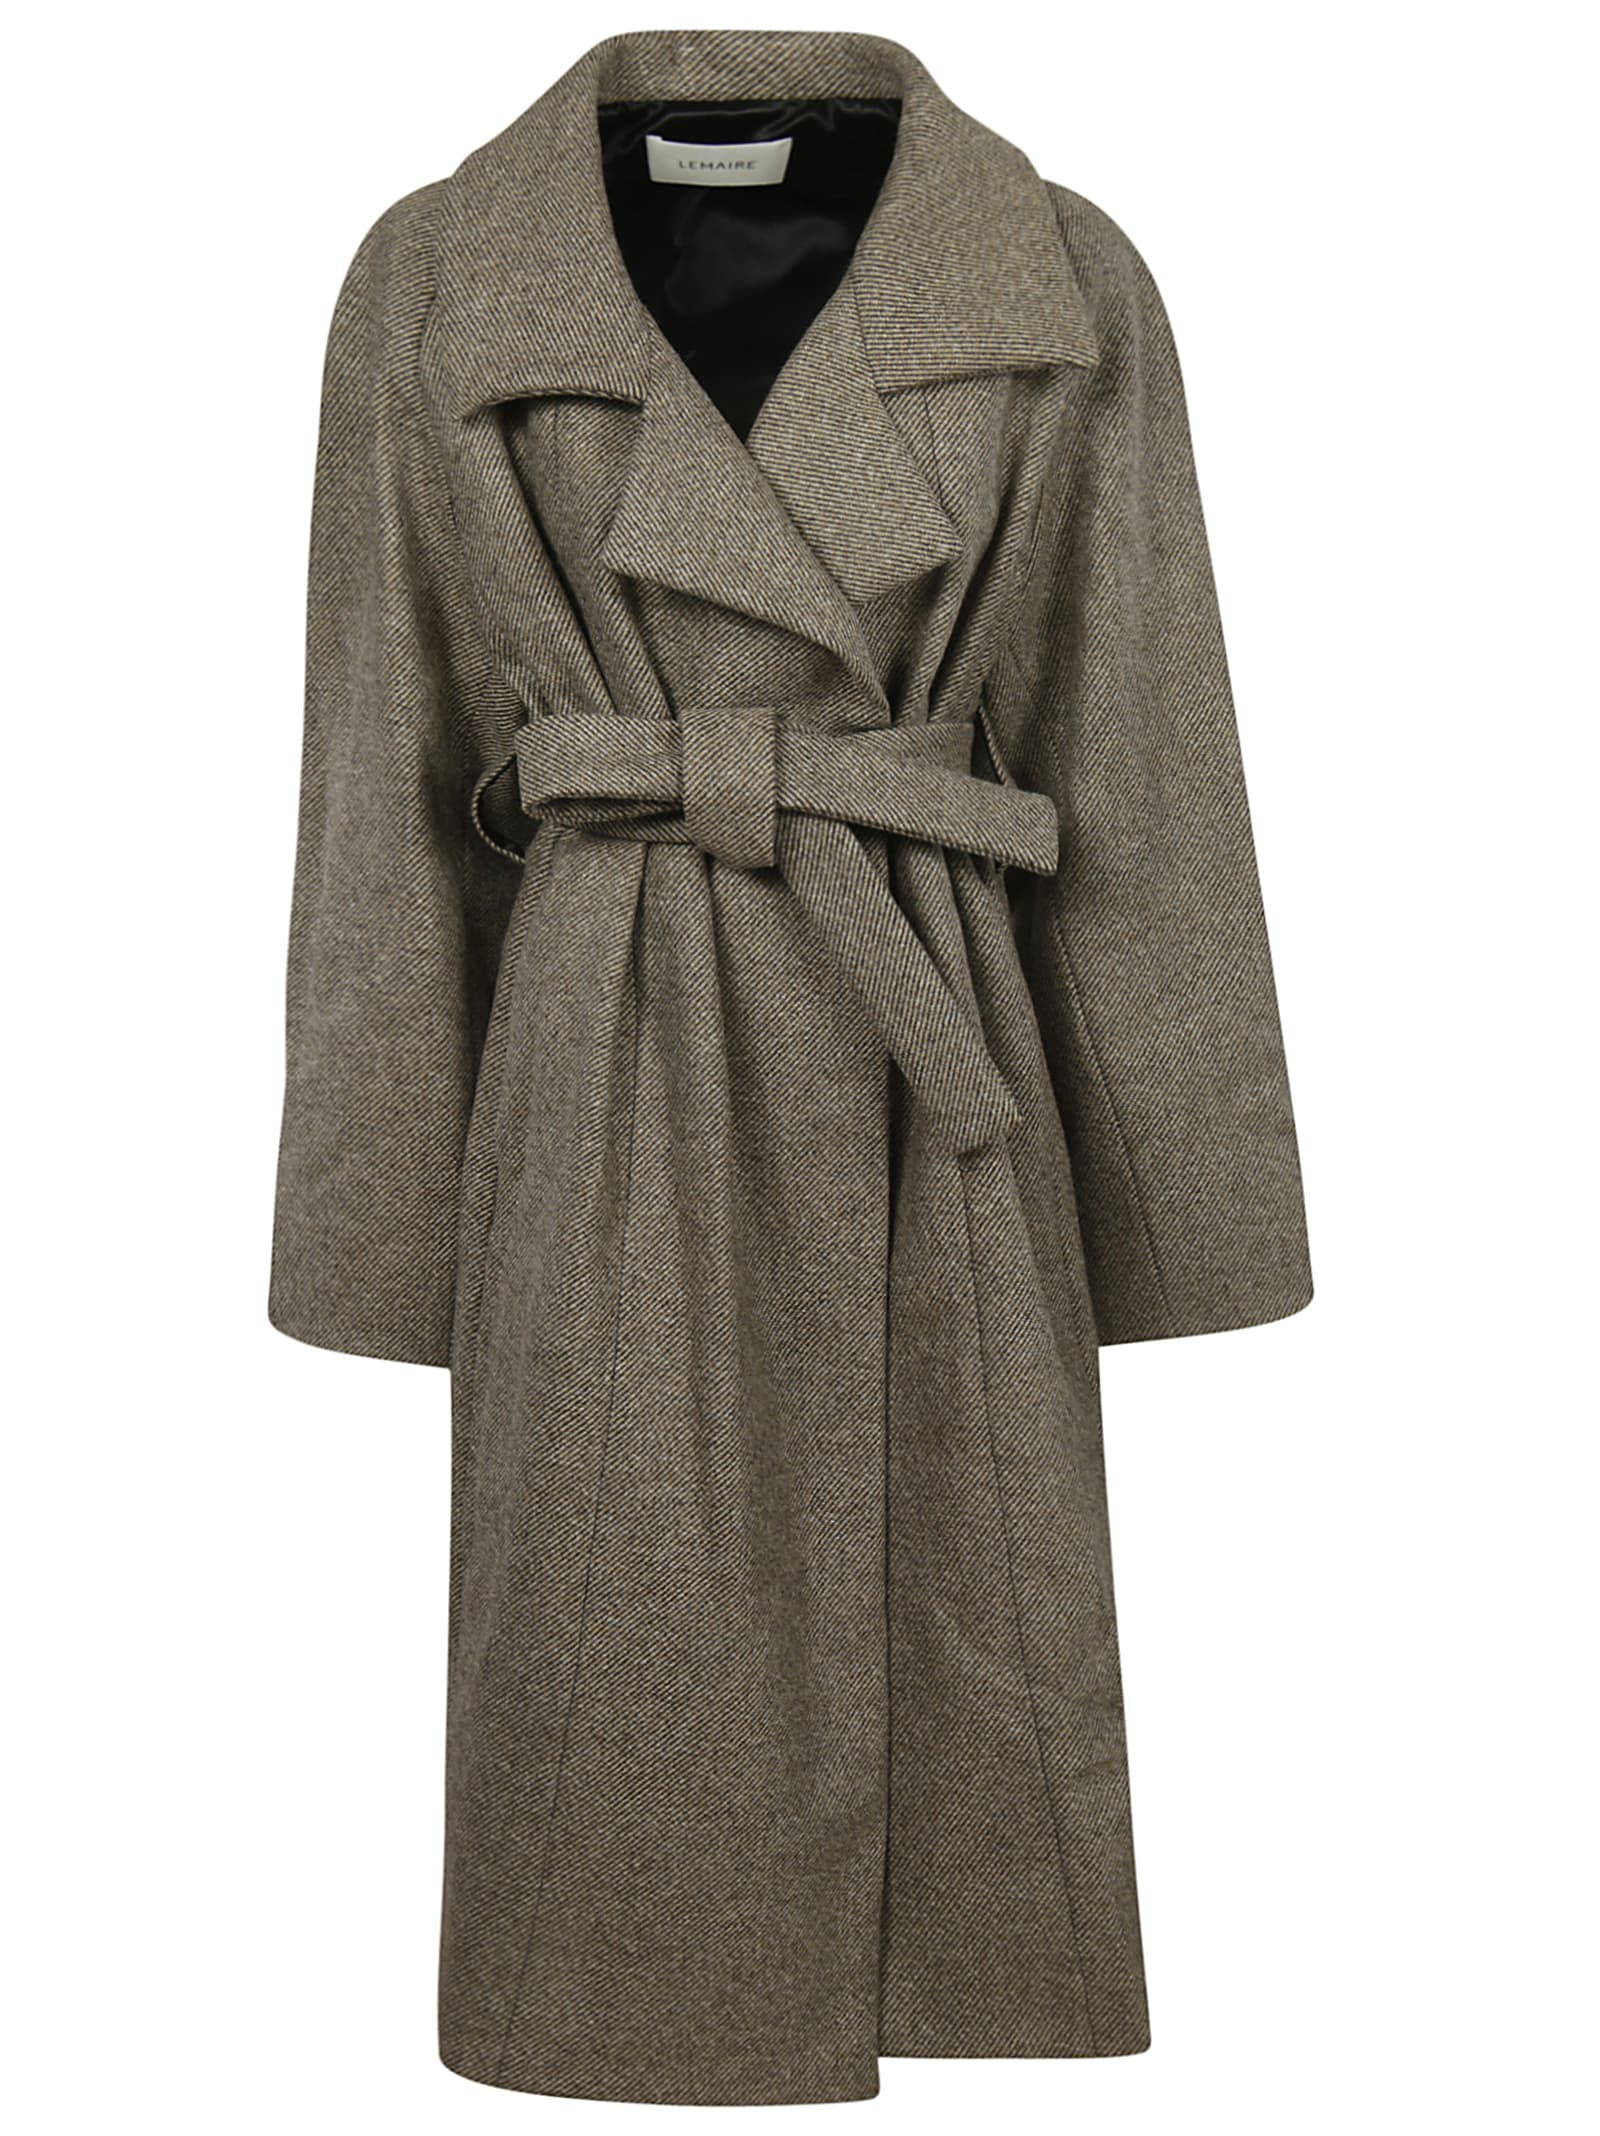 Lemaire Belted Coat